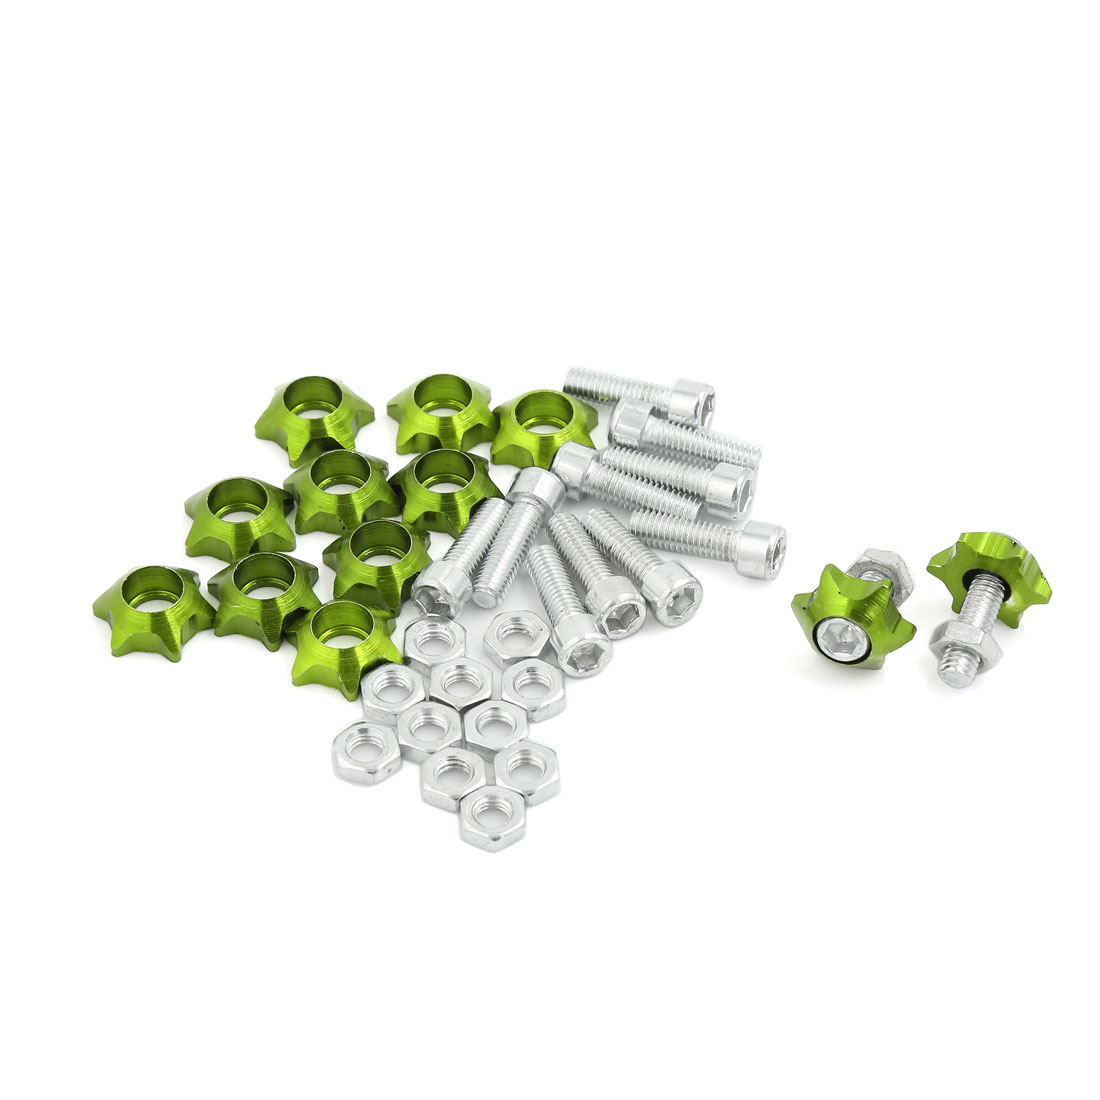 12 Pcs 6mm Thread Diameter Metal Bolts Screw Green for Car License Number Plate